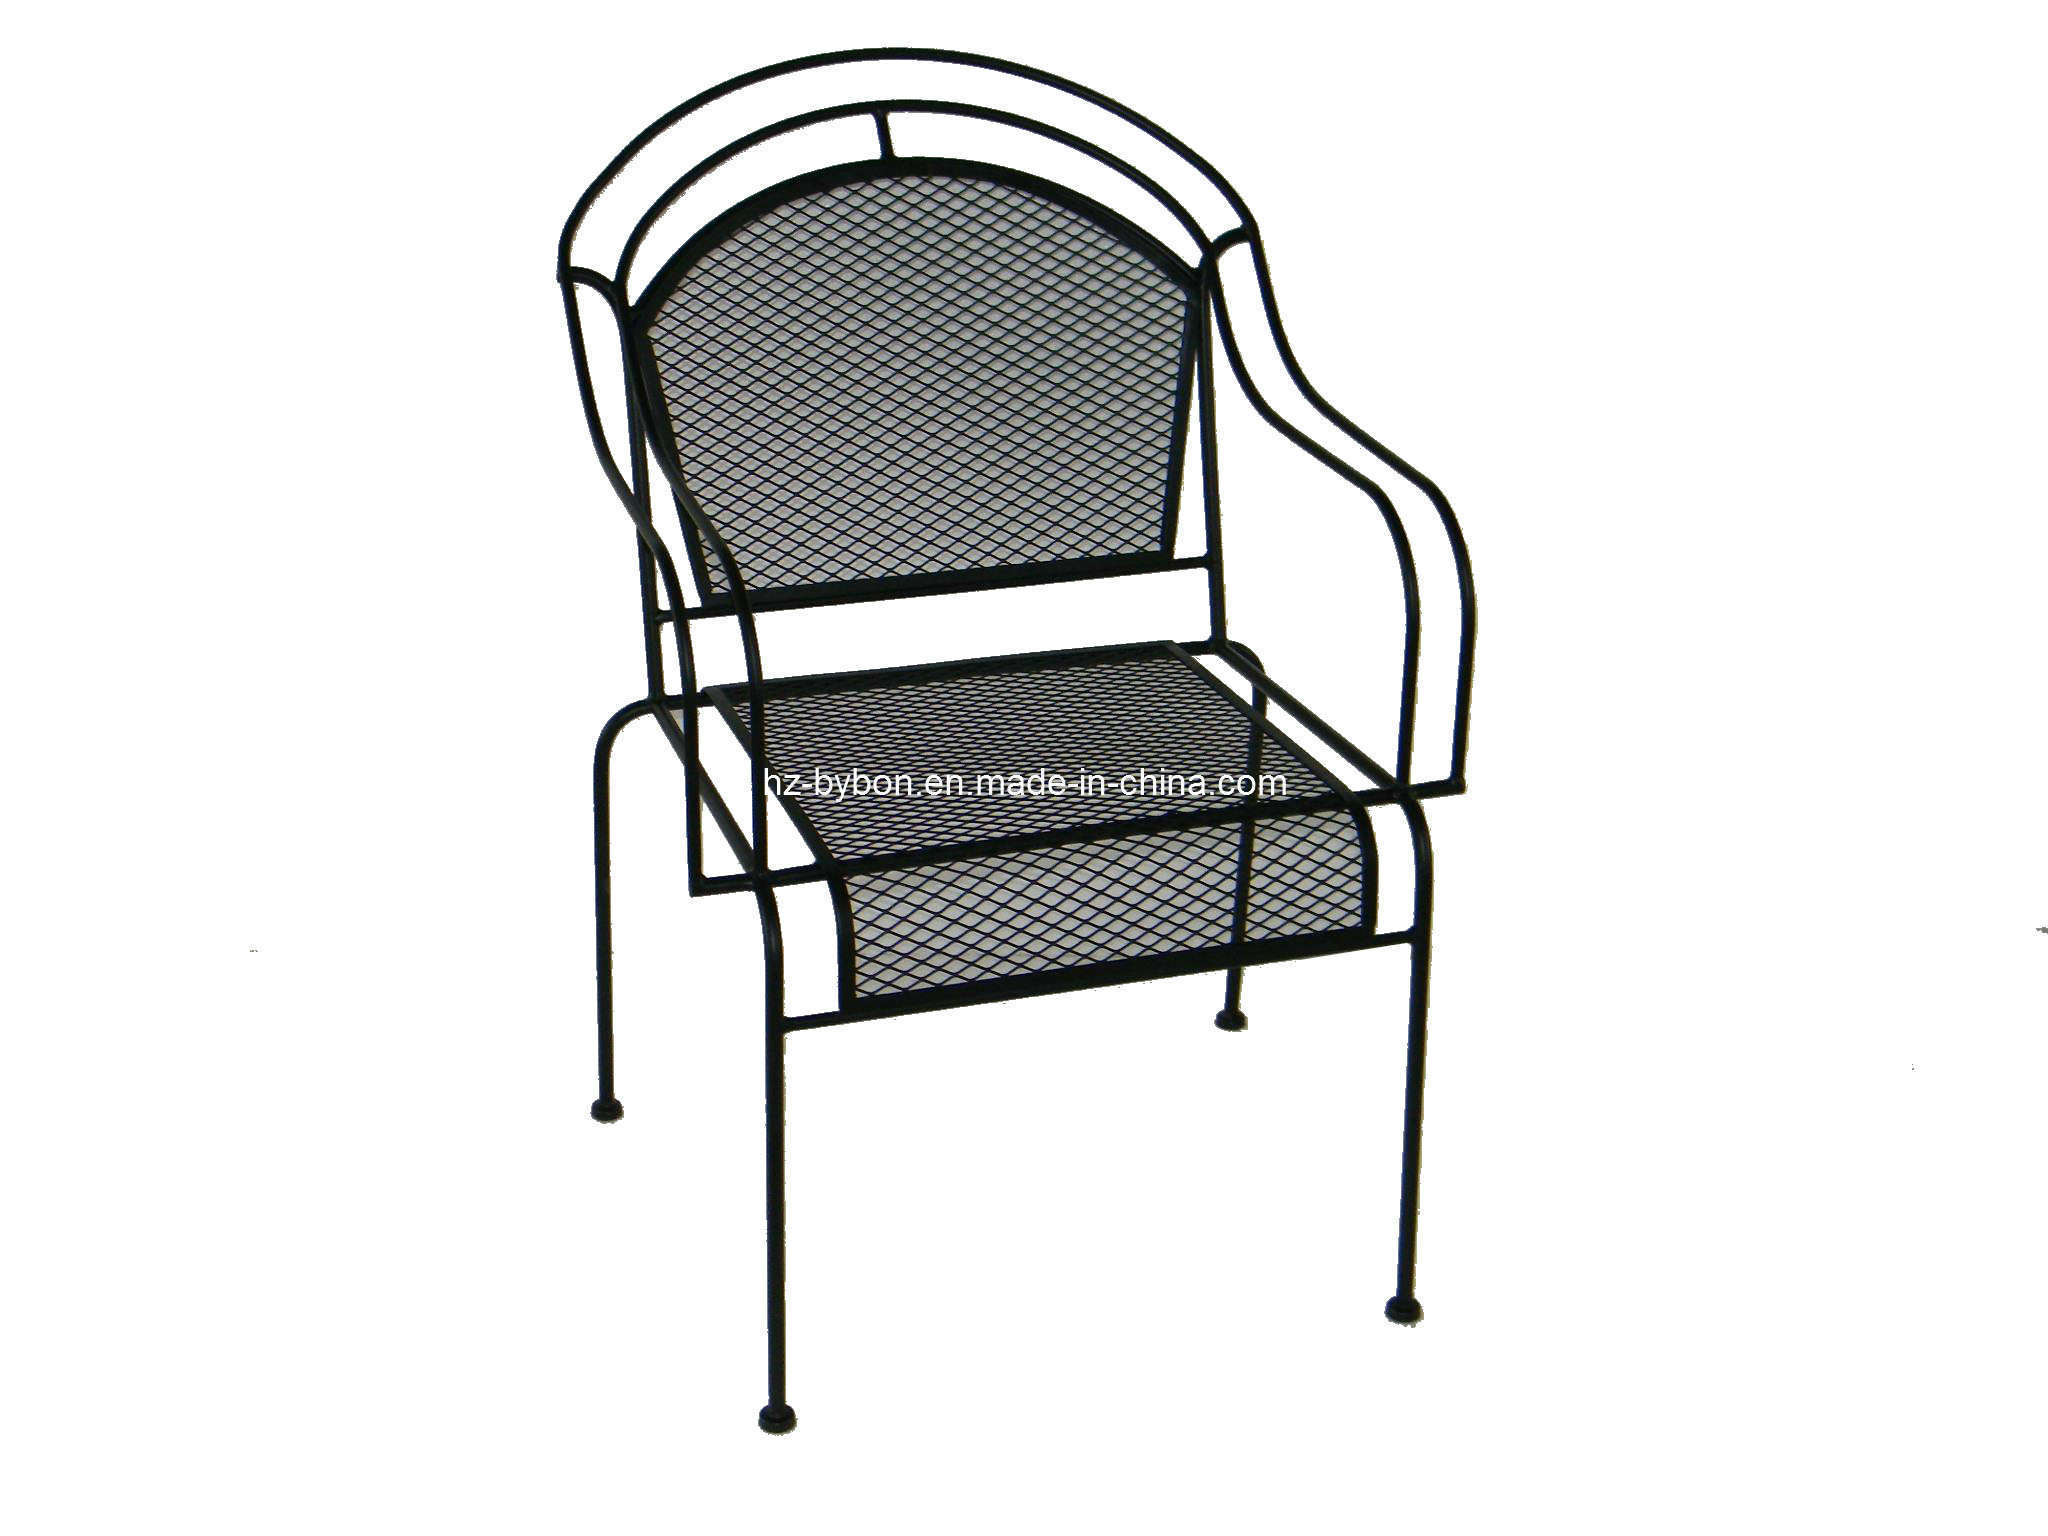 Wrought iron furniture outdoor wrought iron furniture for Iron furniture